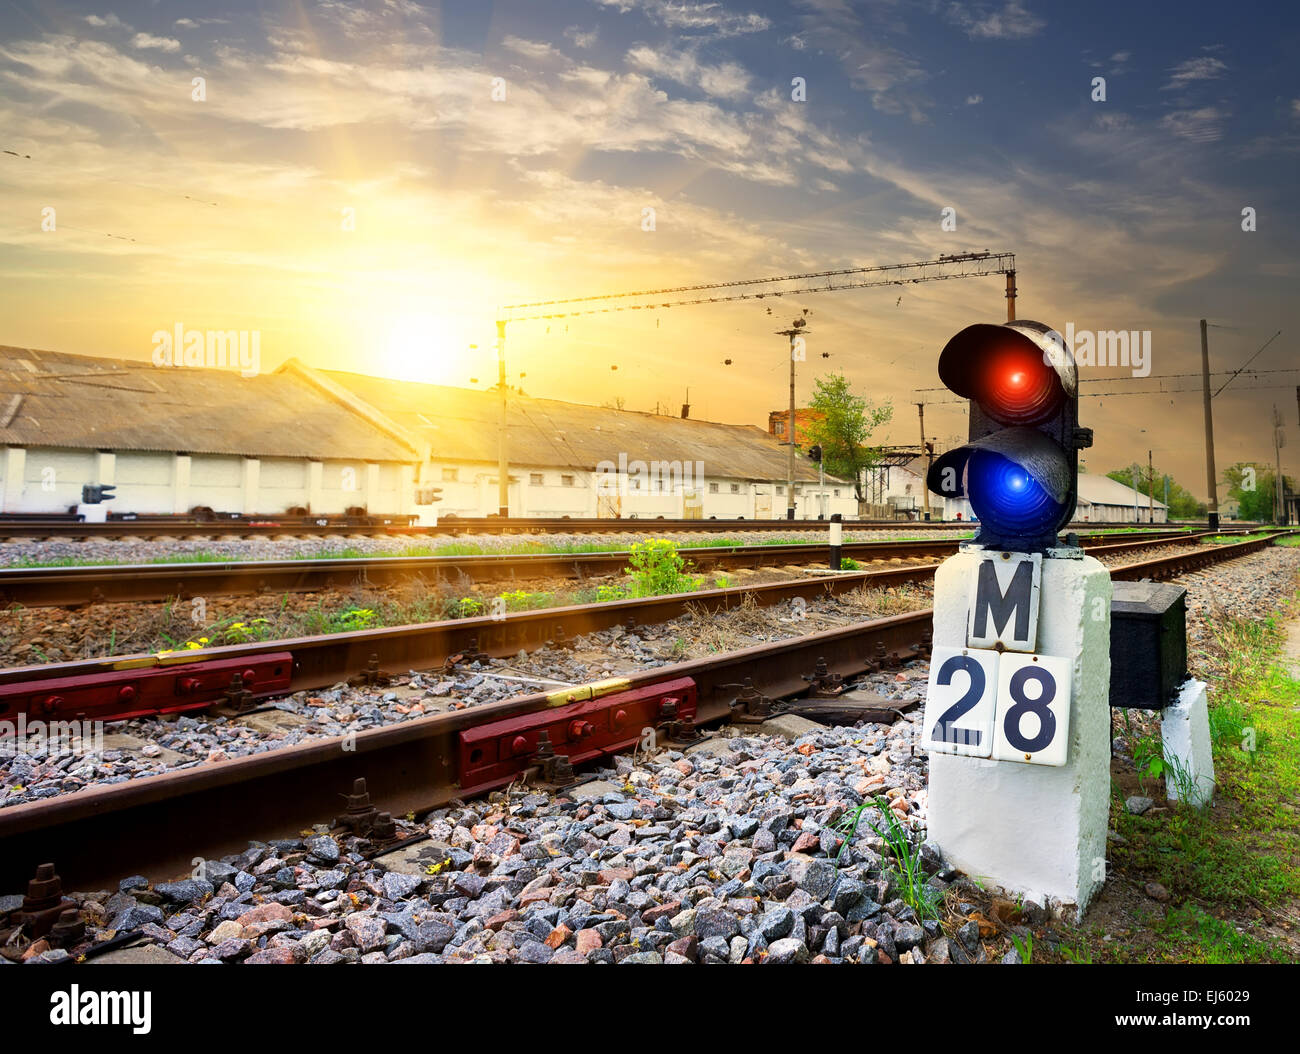 Railway semaphore near industrial station at sunset - Stock Image